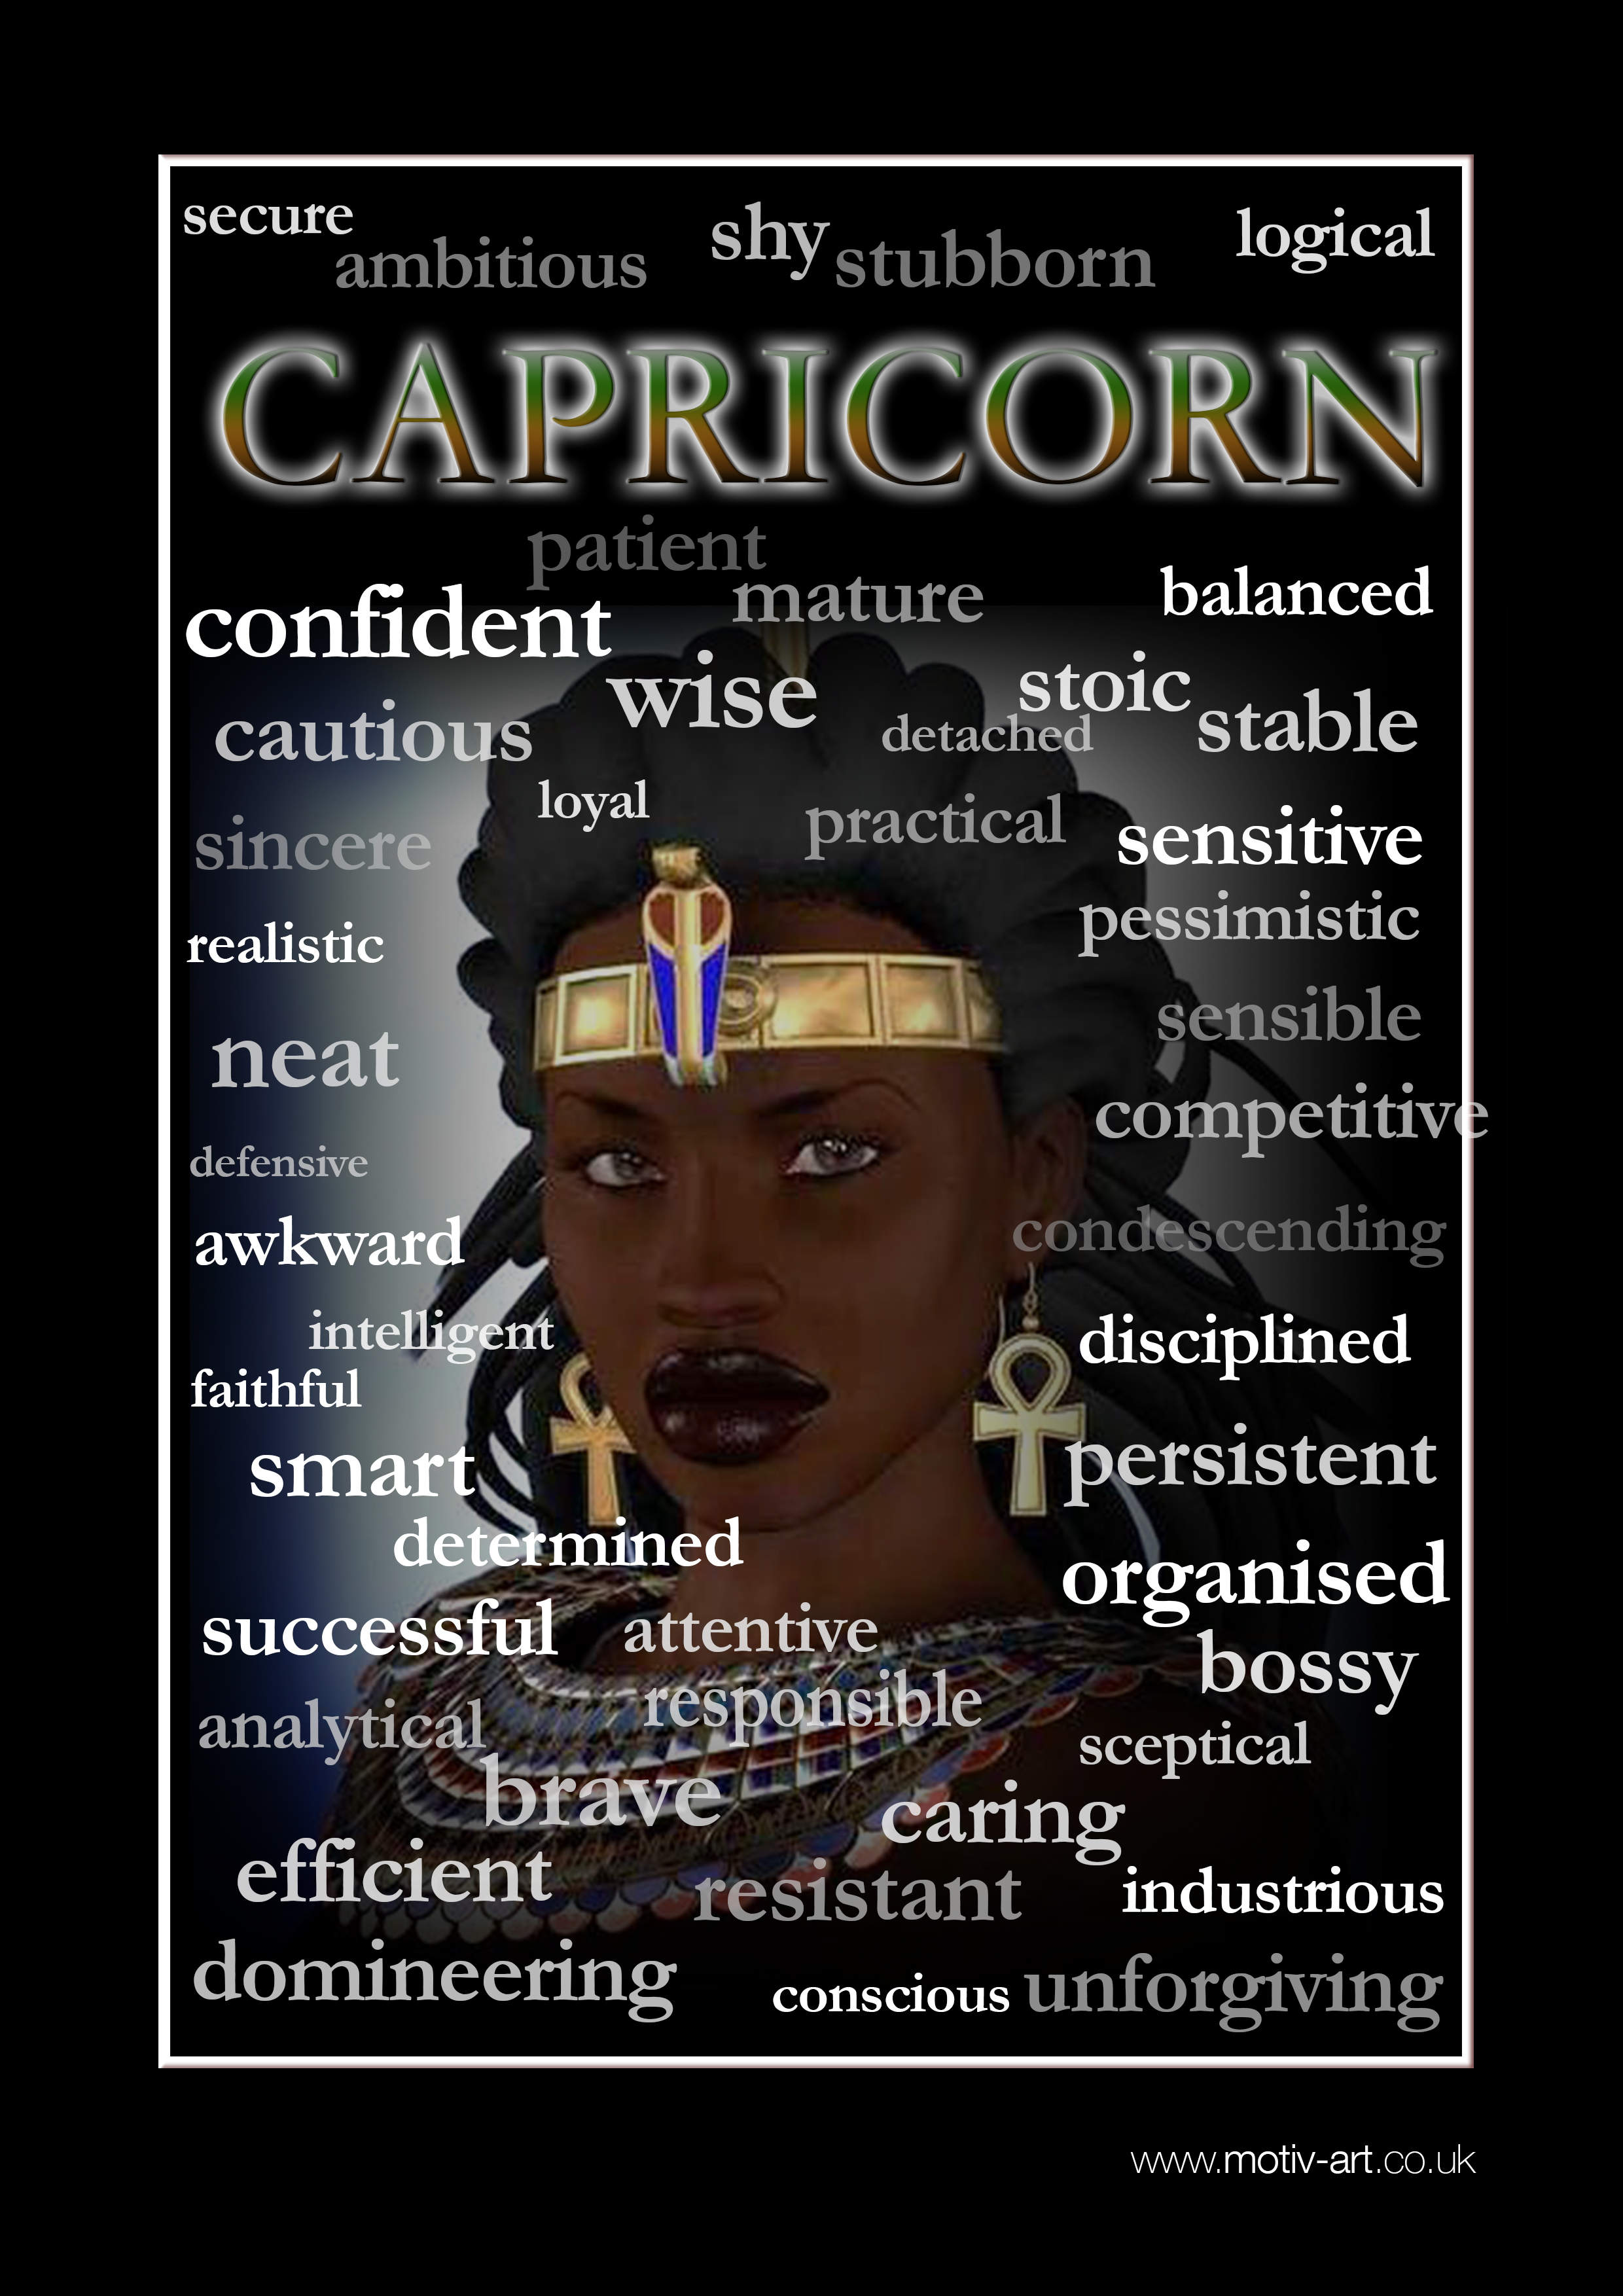 Capricorn 23 Dec - 20 Jan